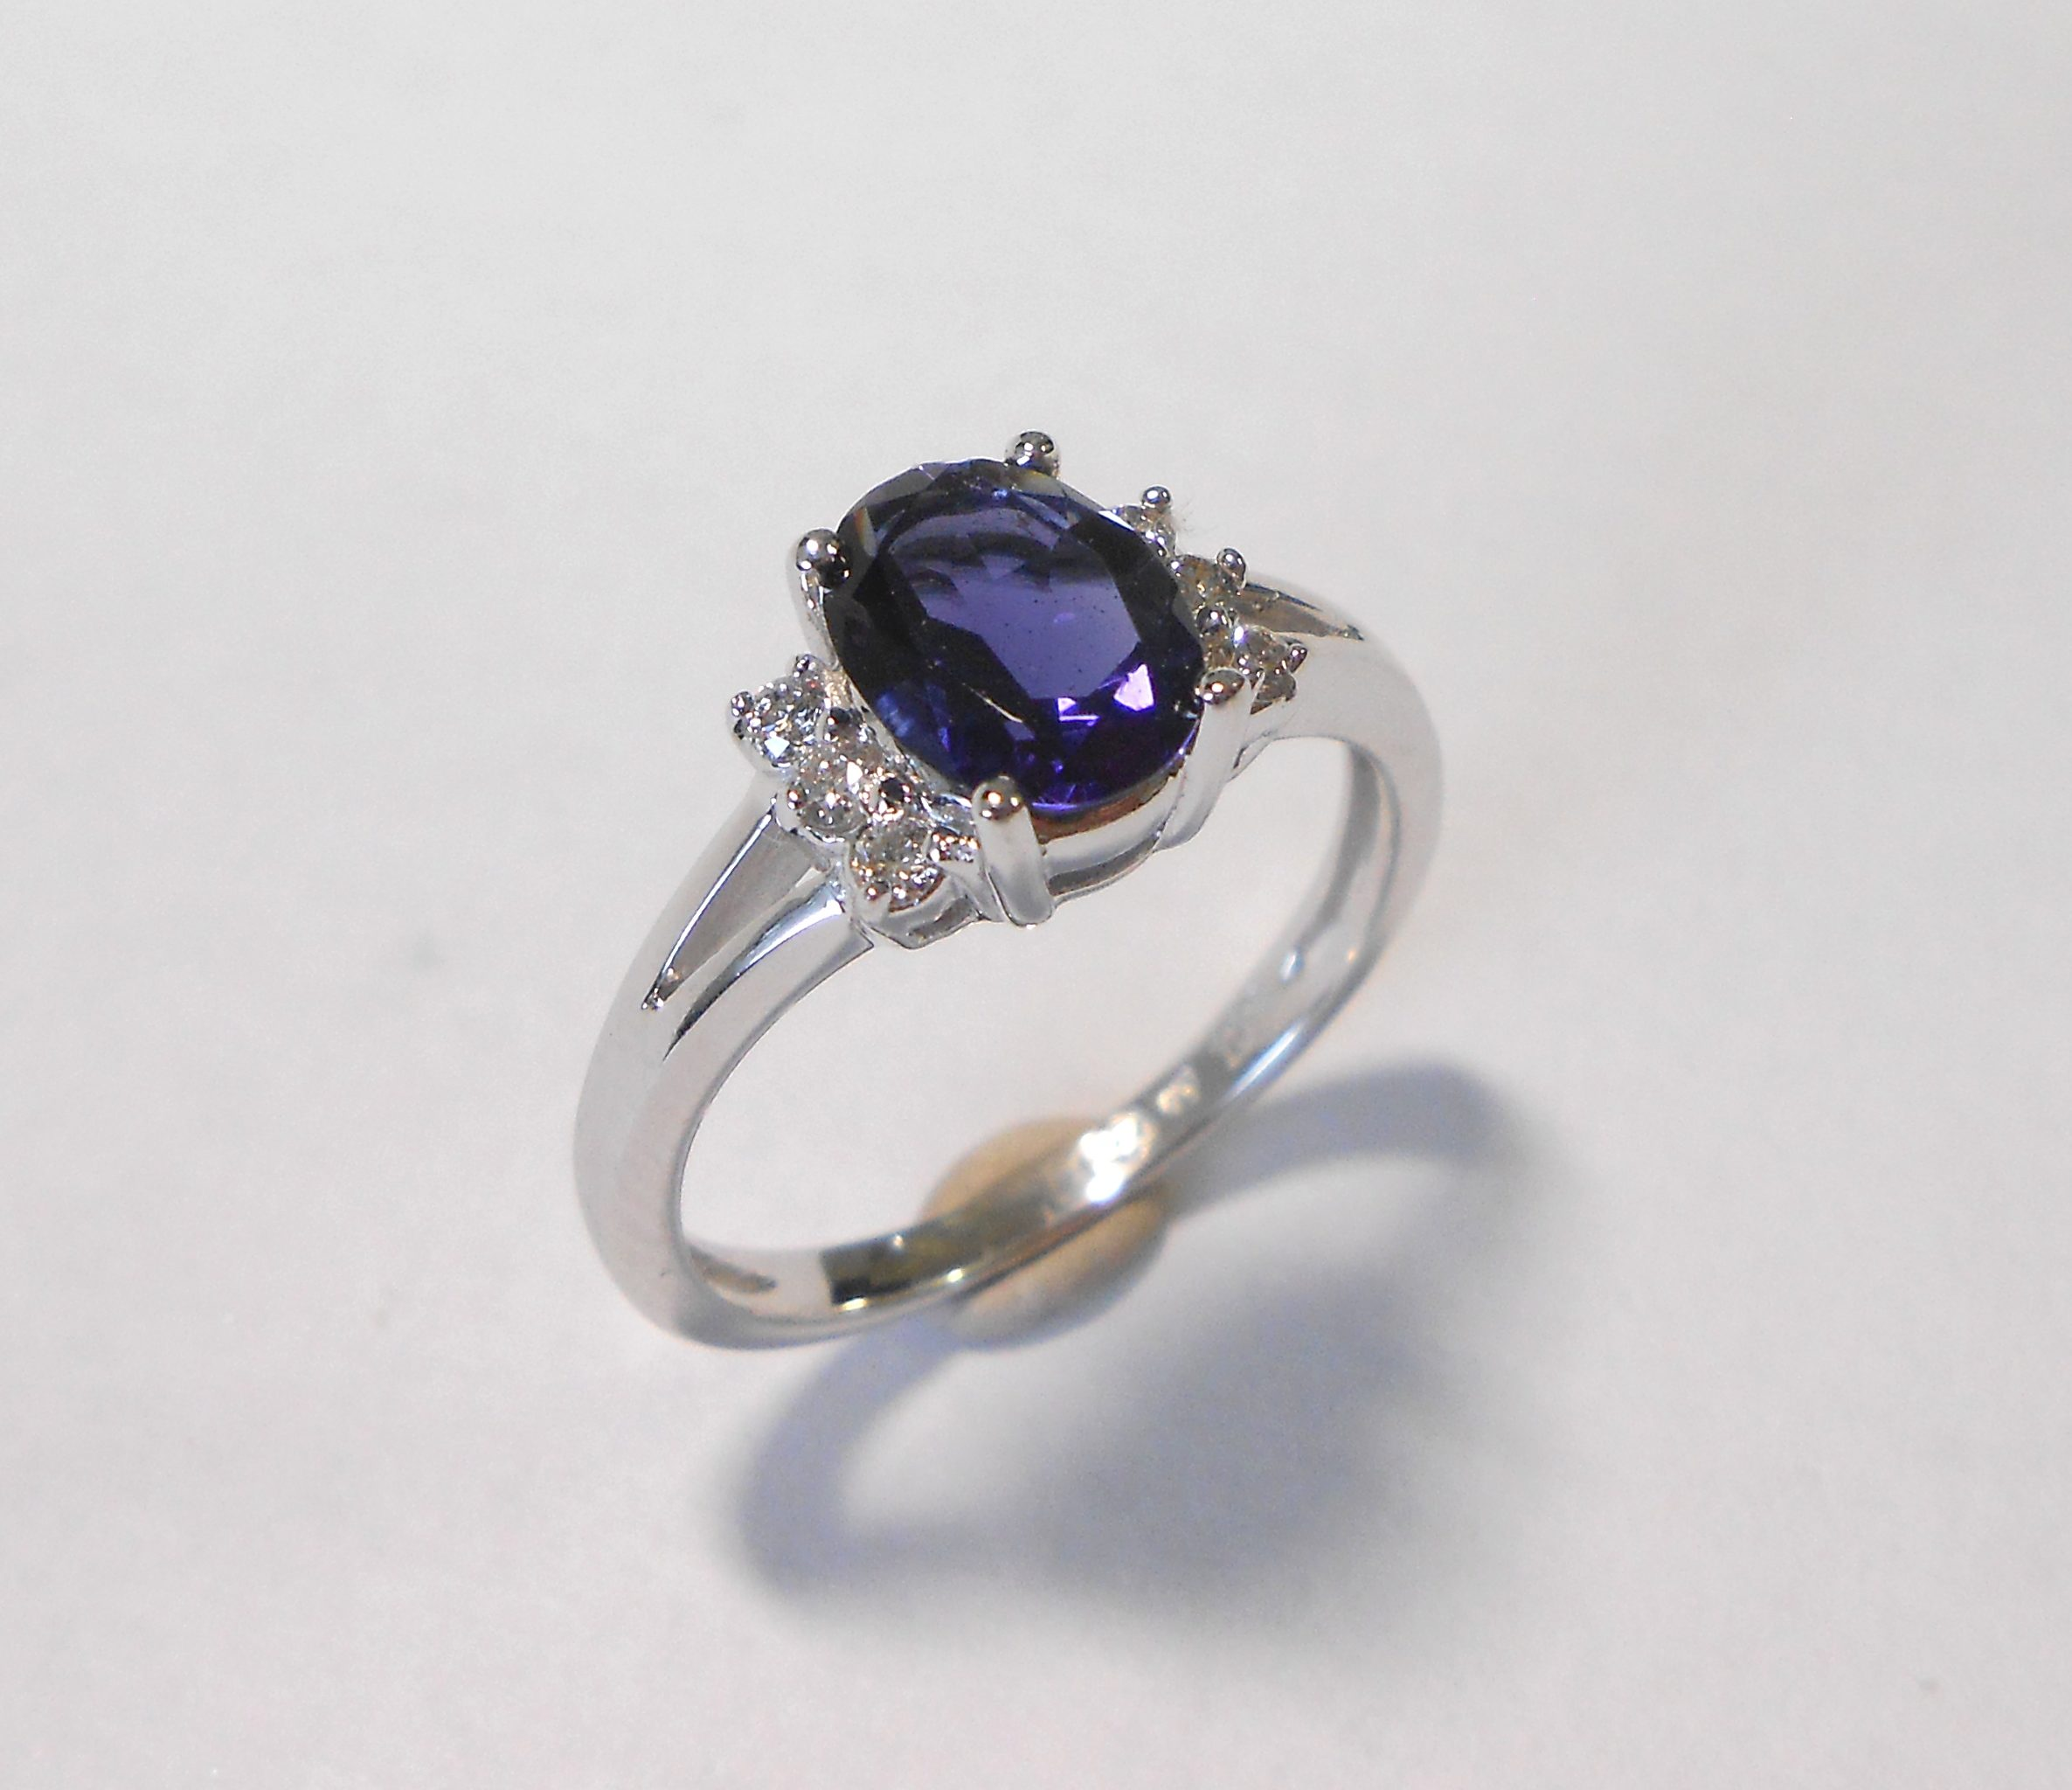 kyklos engagement en amethist jewelry set shop next untitled sapphire ring purple rings previous